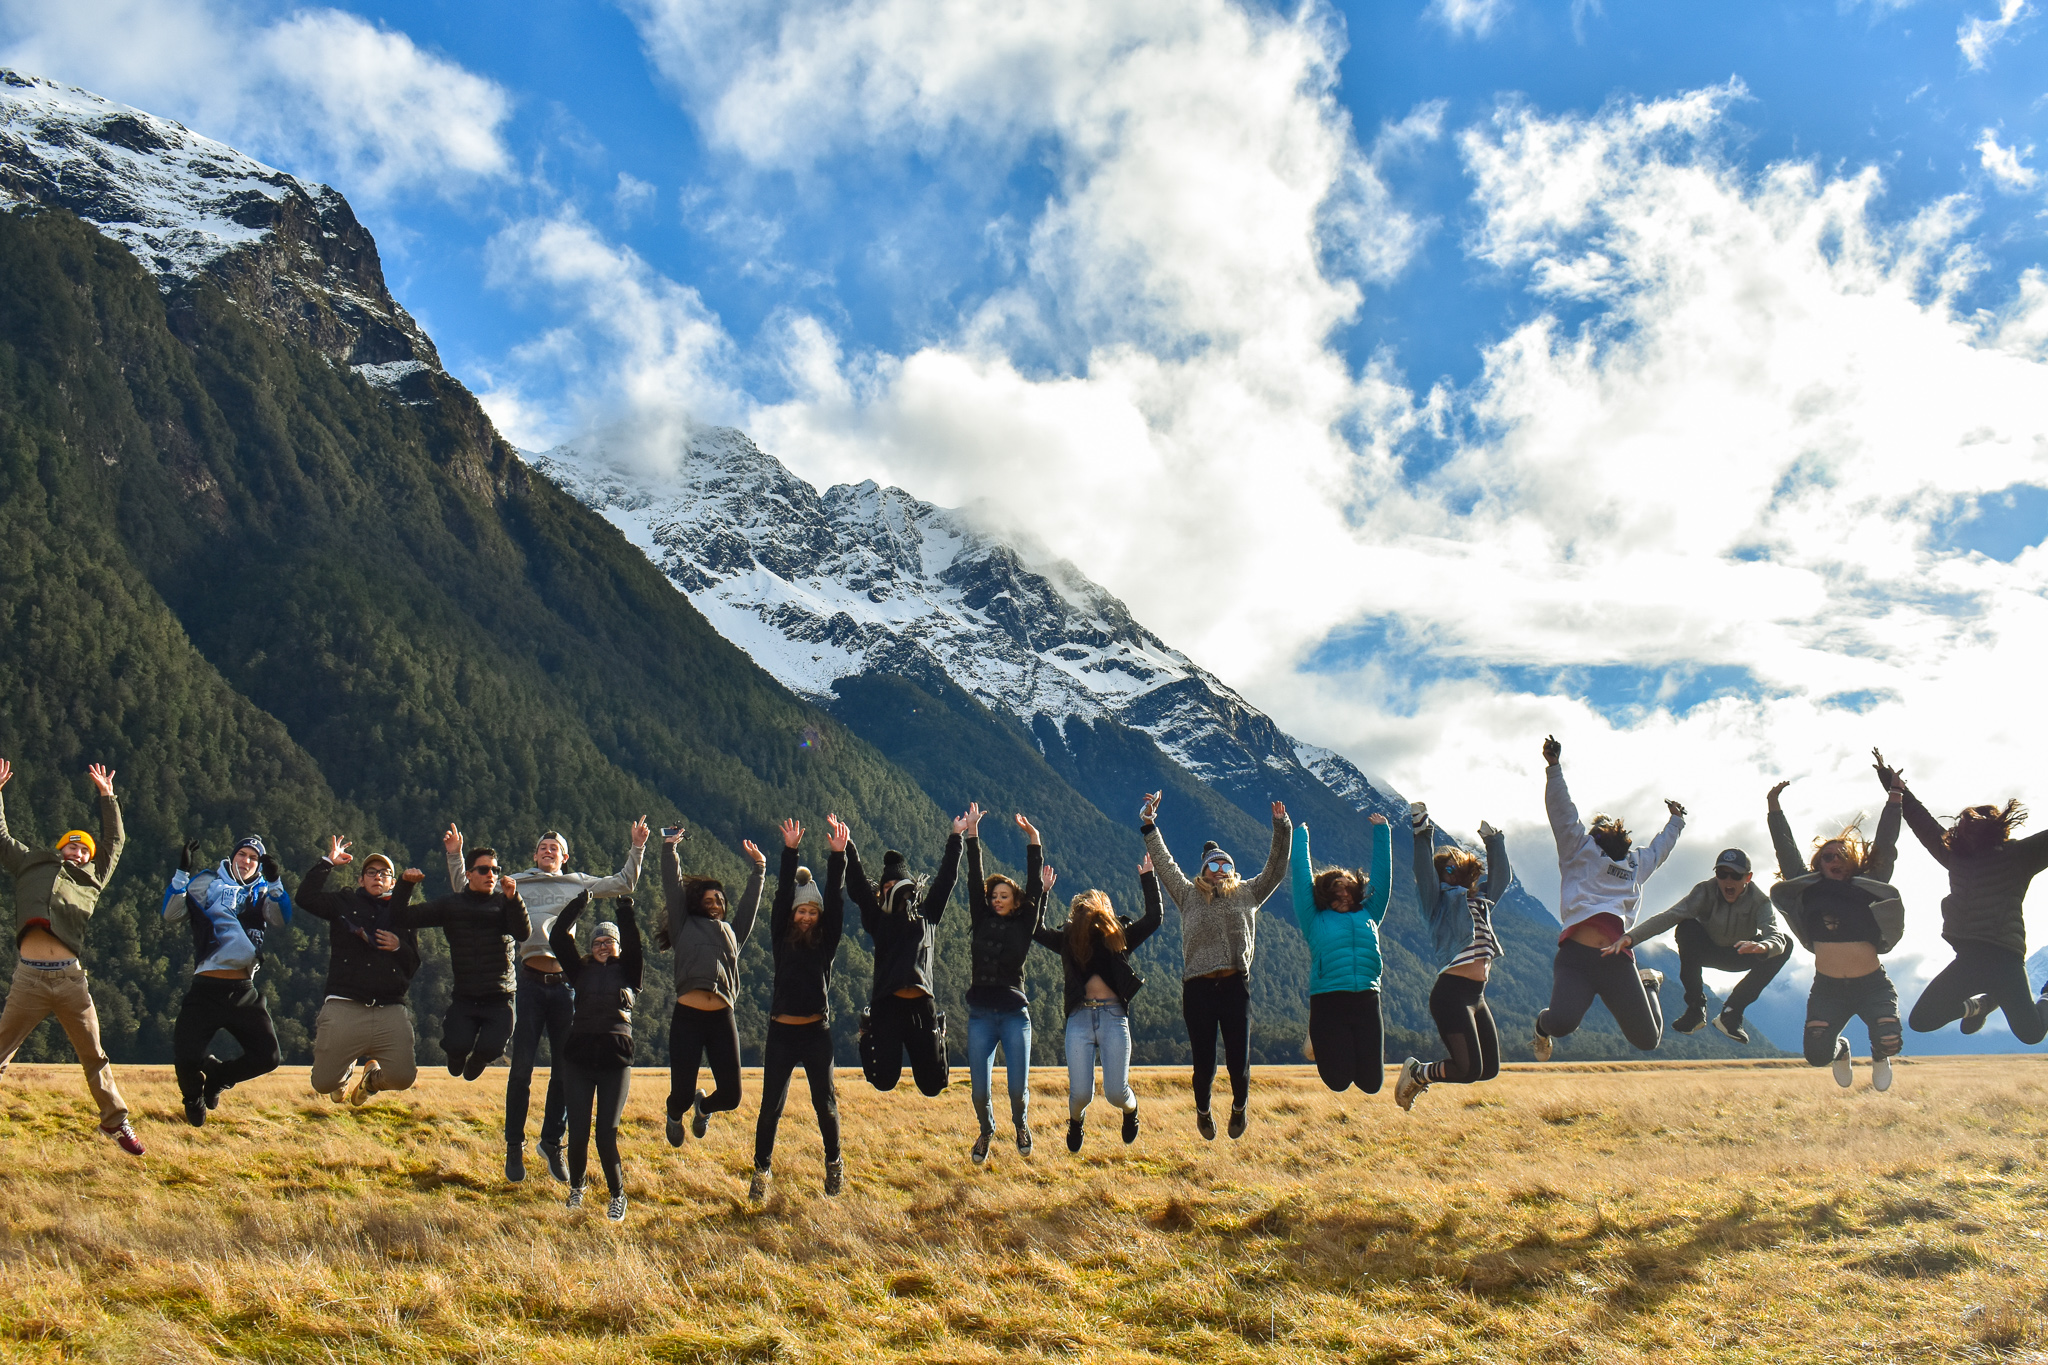 Summer Program - Group Travel | Travel For Teens: New Zealand Adventure